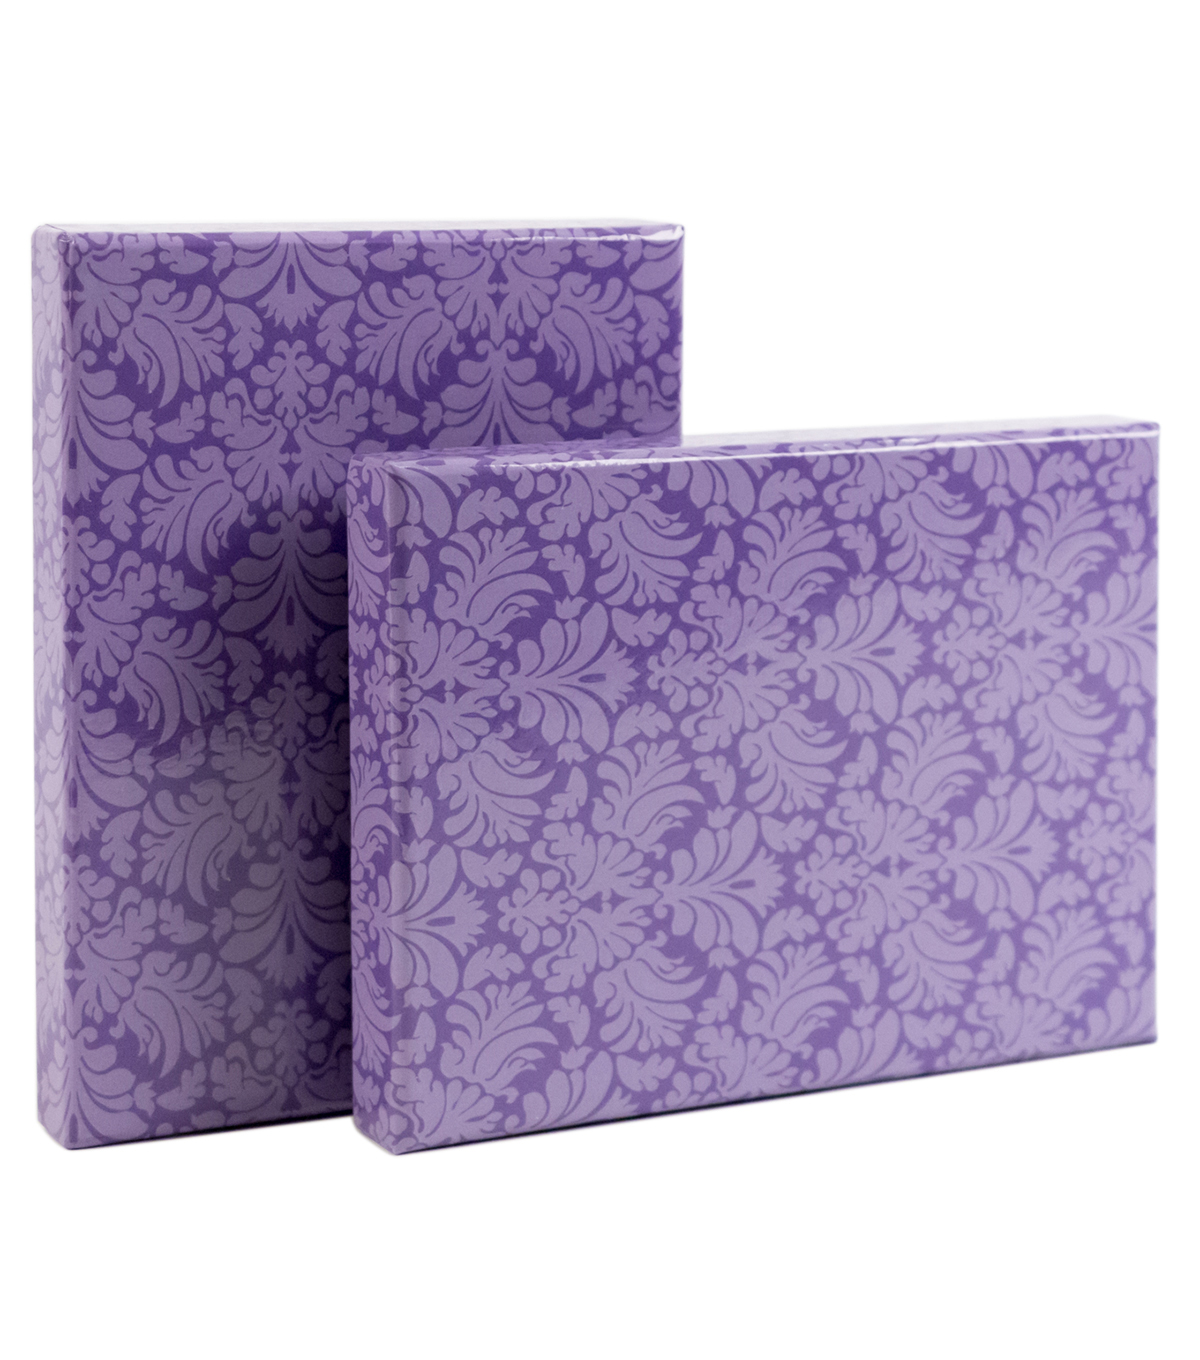 DCWV Designer Set of A6 Boxes: Purple